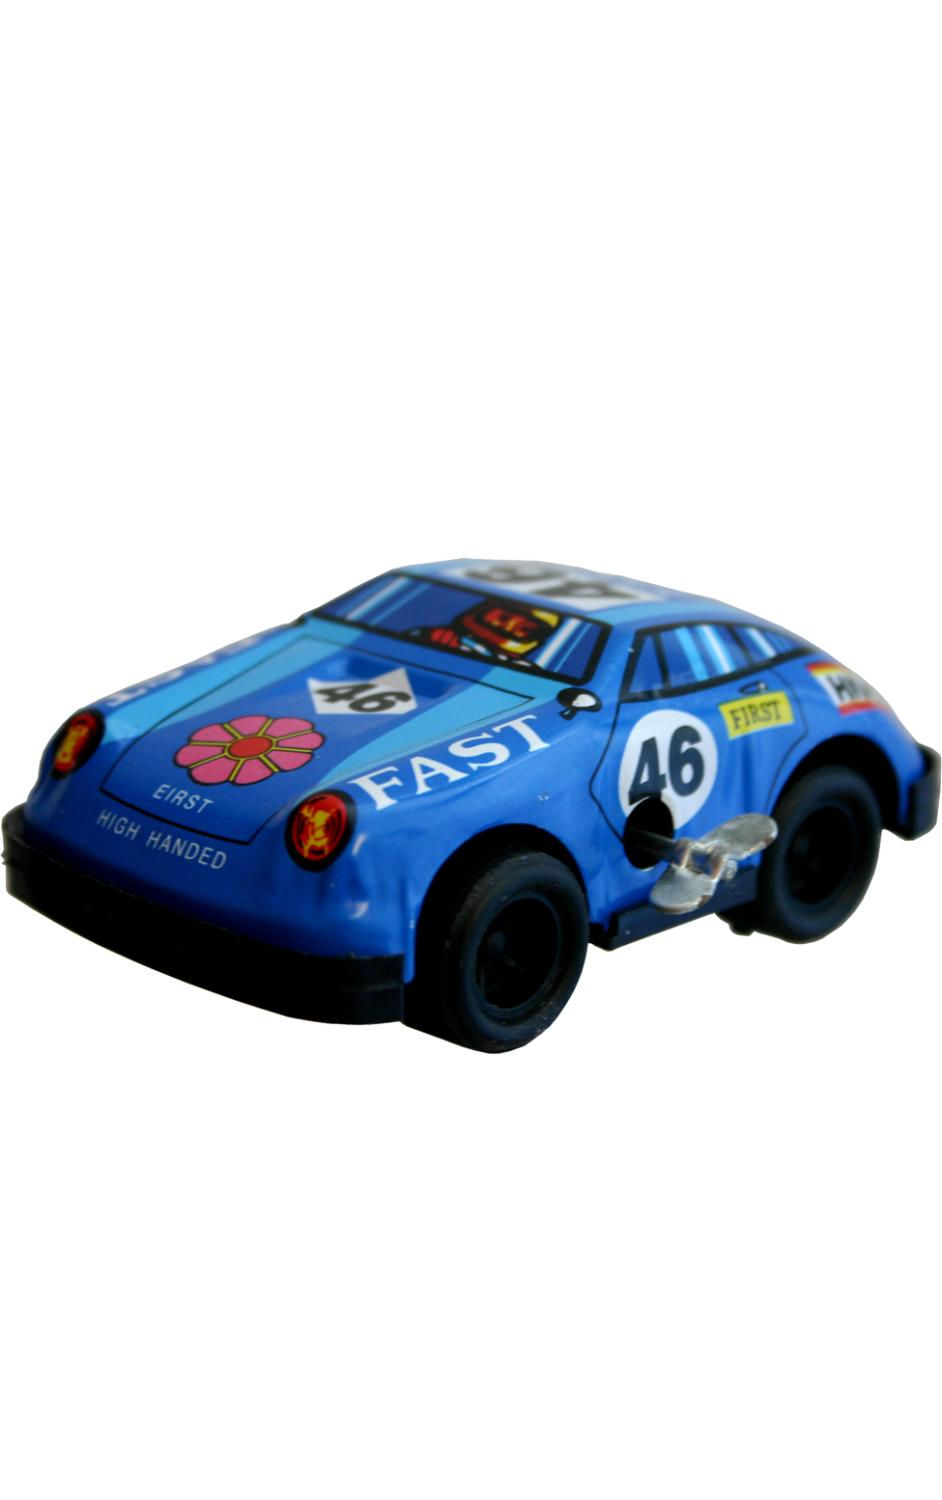 MS046 - Collectible Tin Toy - Racer - 1.5